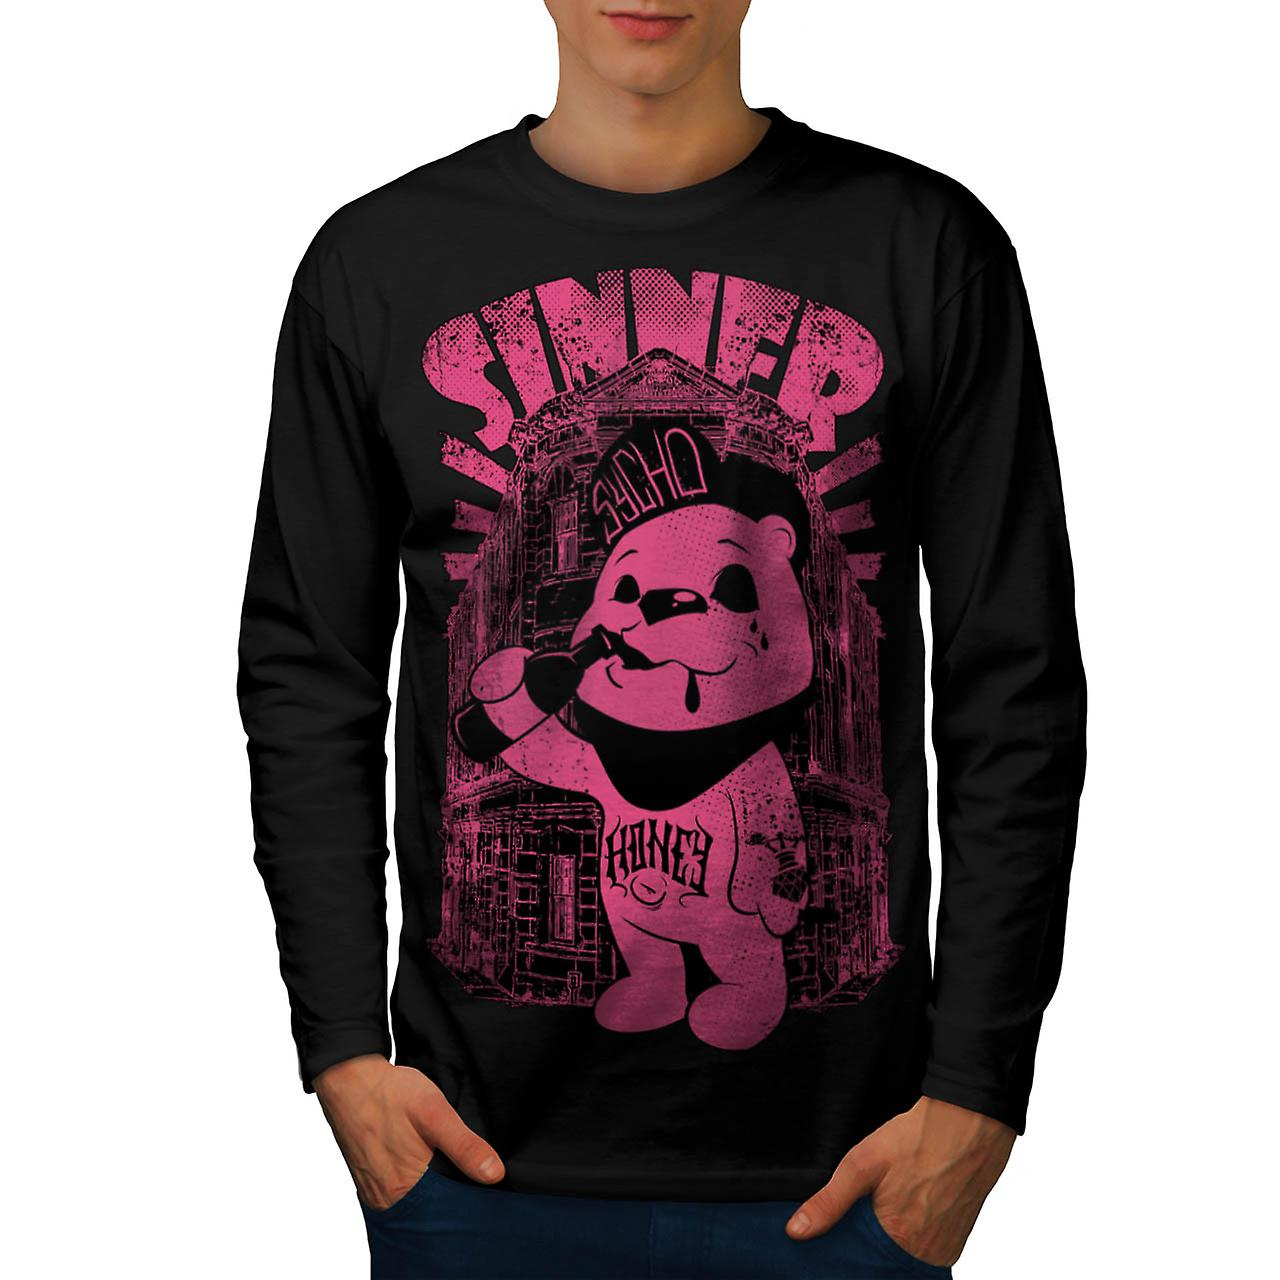 Sinner Teddy Ted Bear Psycho Cub Men Black Long Sleeve T-shirt | Wellcoda